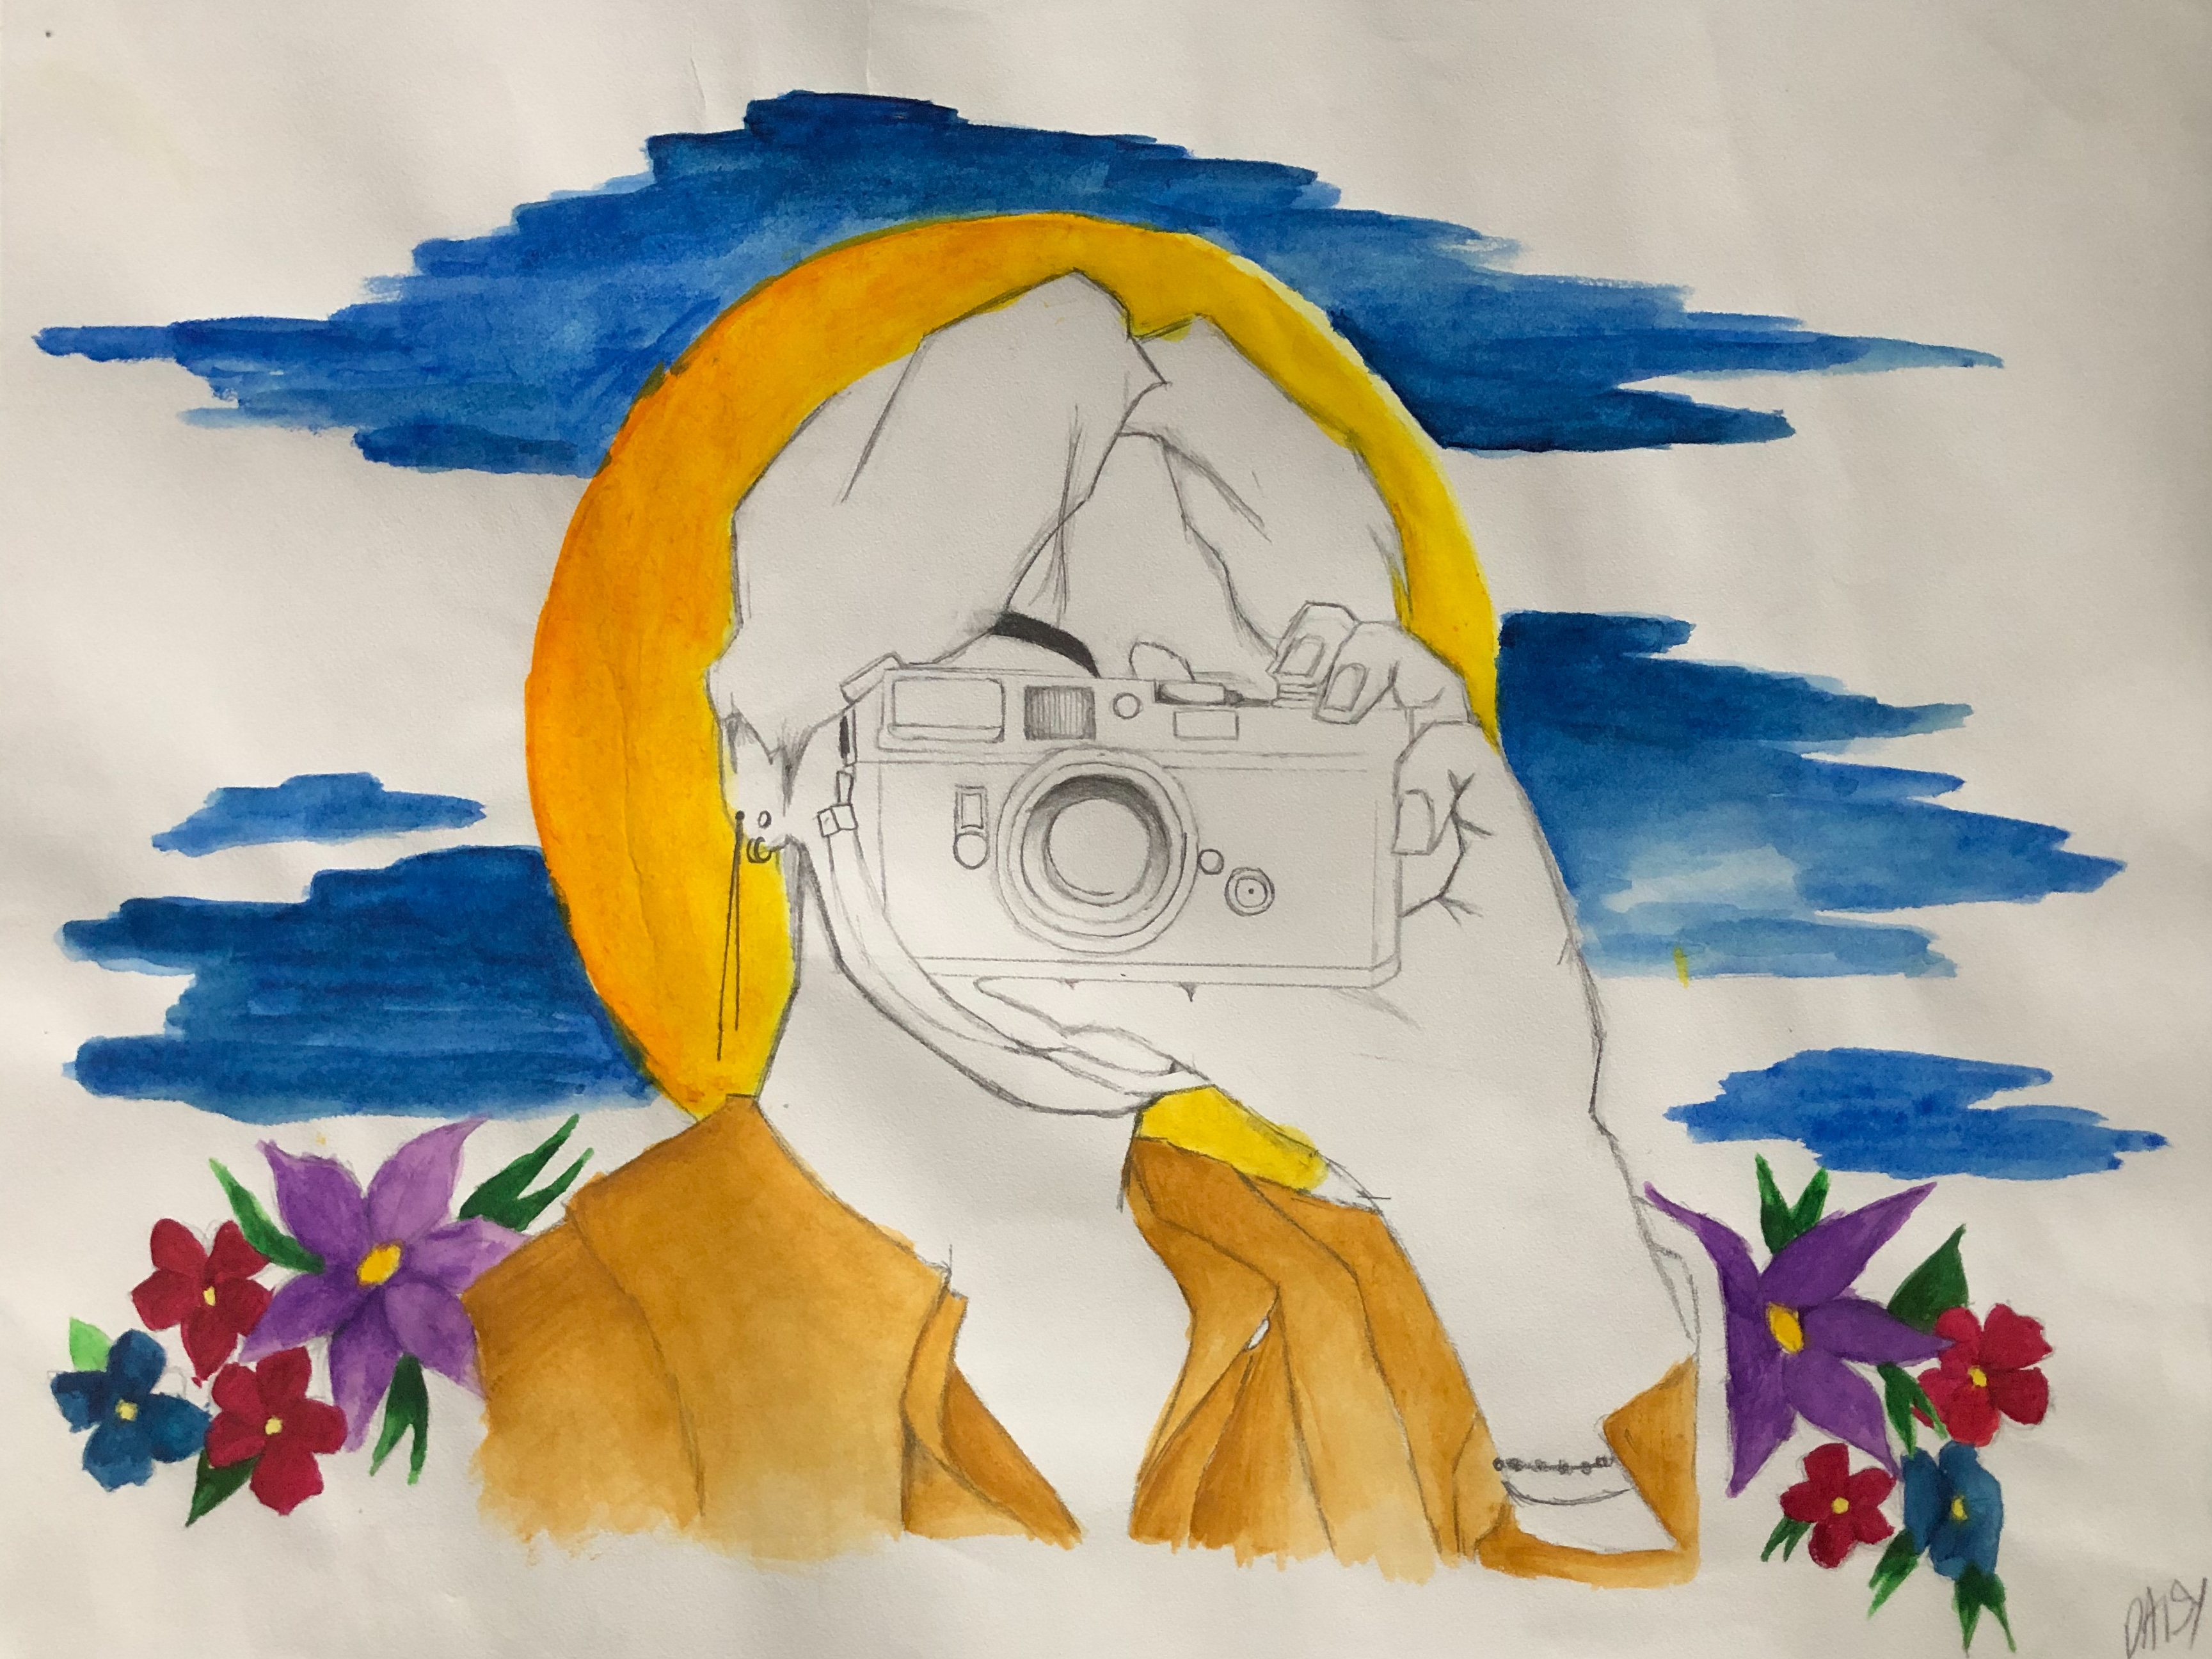 Daisy-Almanza-8th-pencil-_-watercolor-Luanne-Gritton-John-Deere-Middle-School